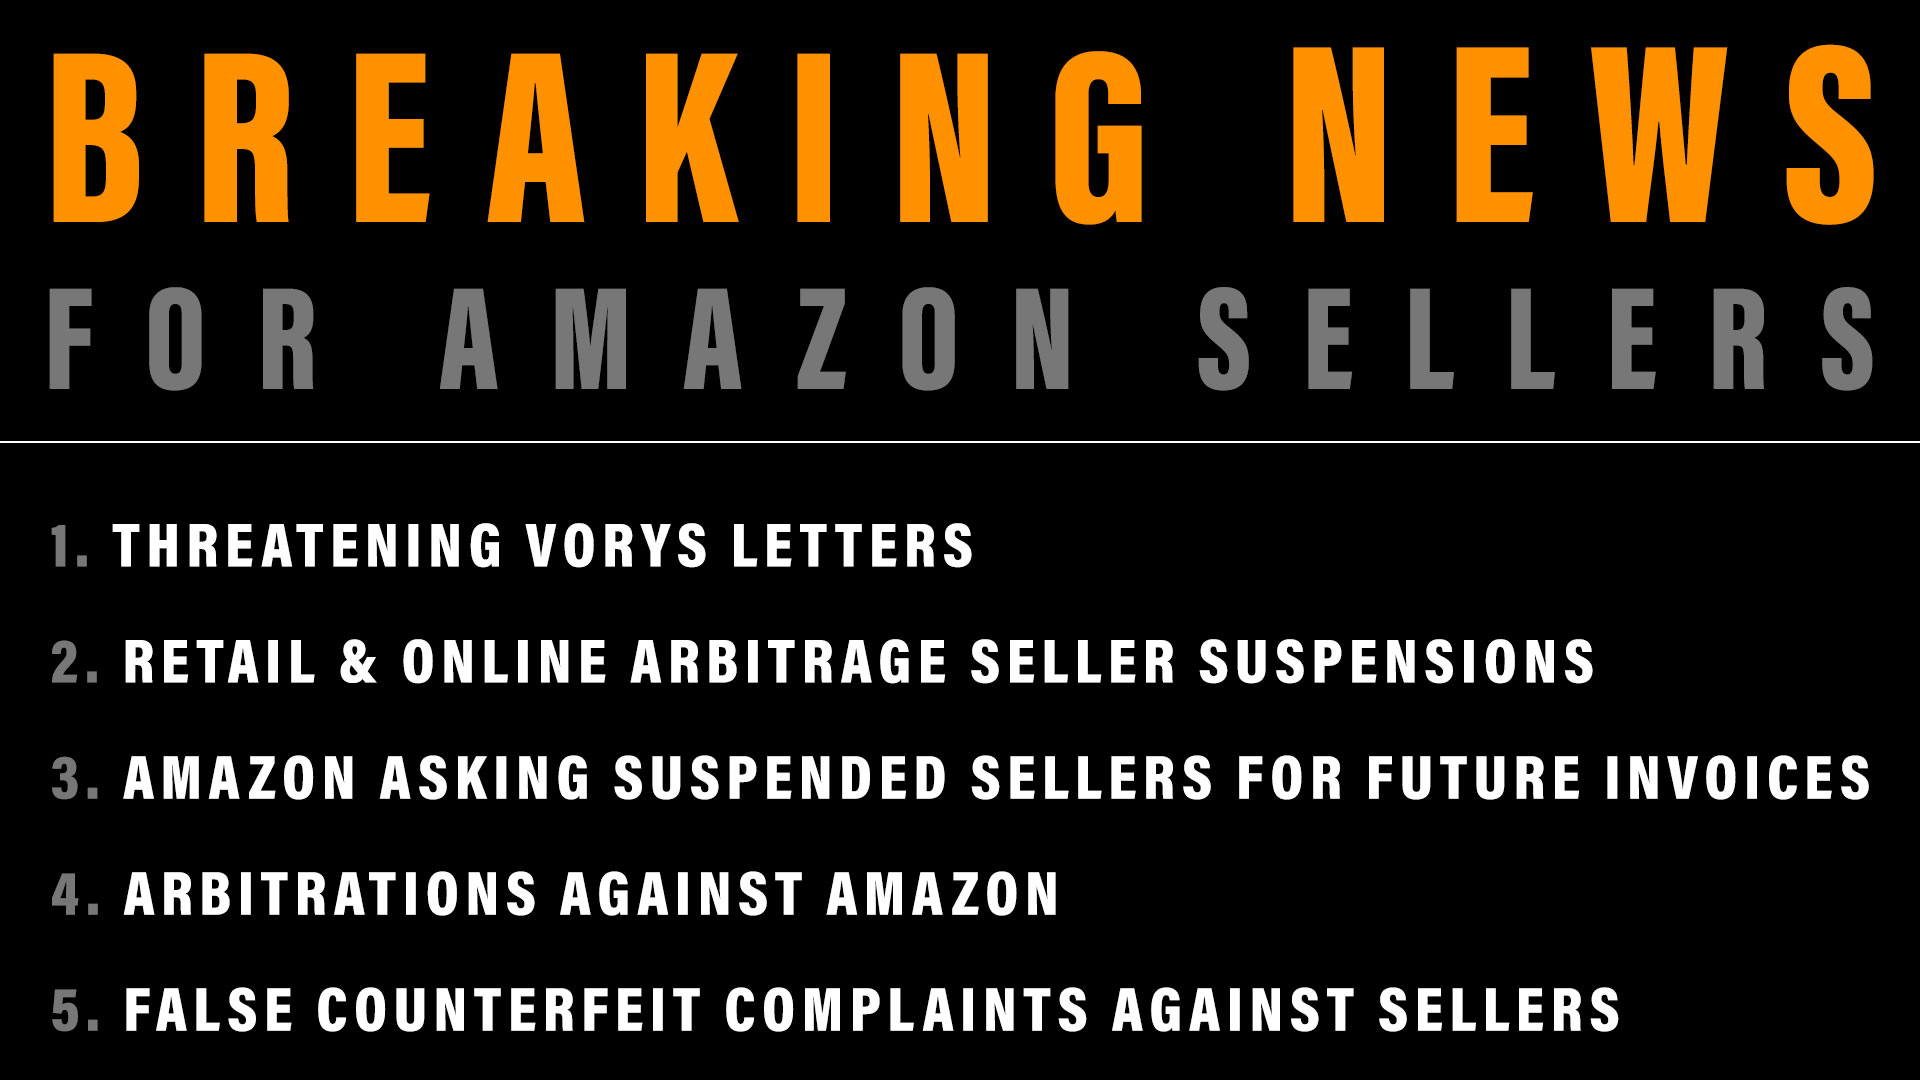 Amazon Seller News: VORYS LETTERS, RETAIL & ONLINE ARBITRAGE, AMAZON ASKING SUSPENDED SELLERS FOR FUTURE INVOICES, ARBITRATION AGAINST AMAZON, FALSE COUNTERFEIT COMPLAINTS